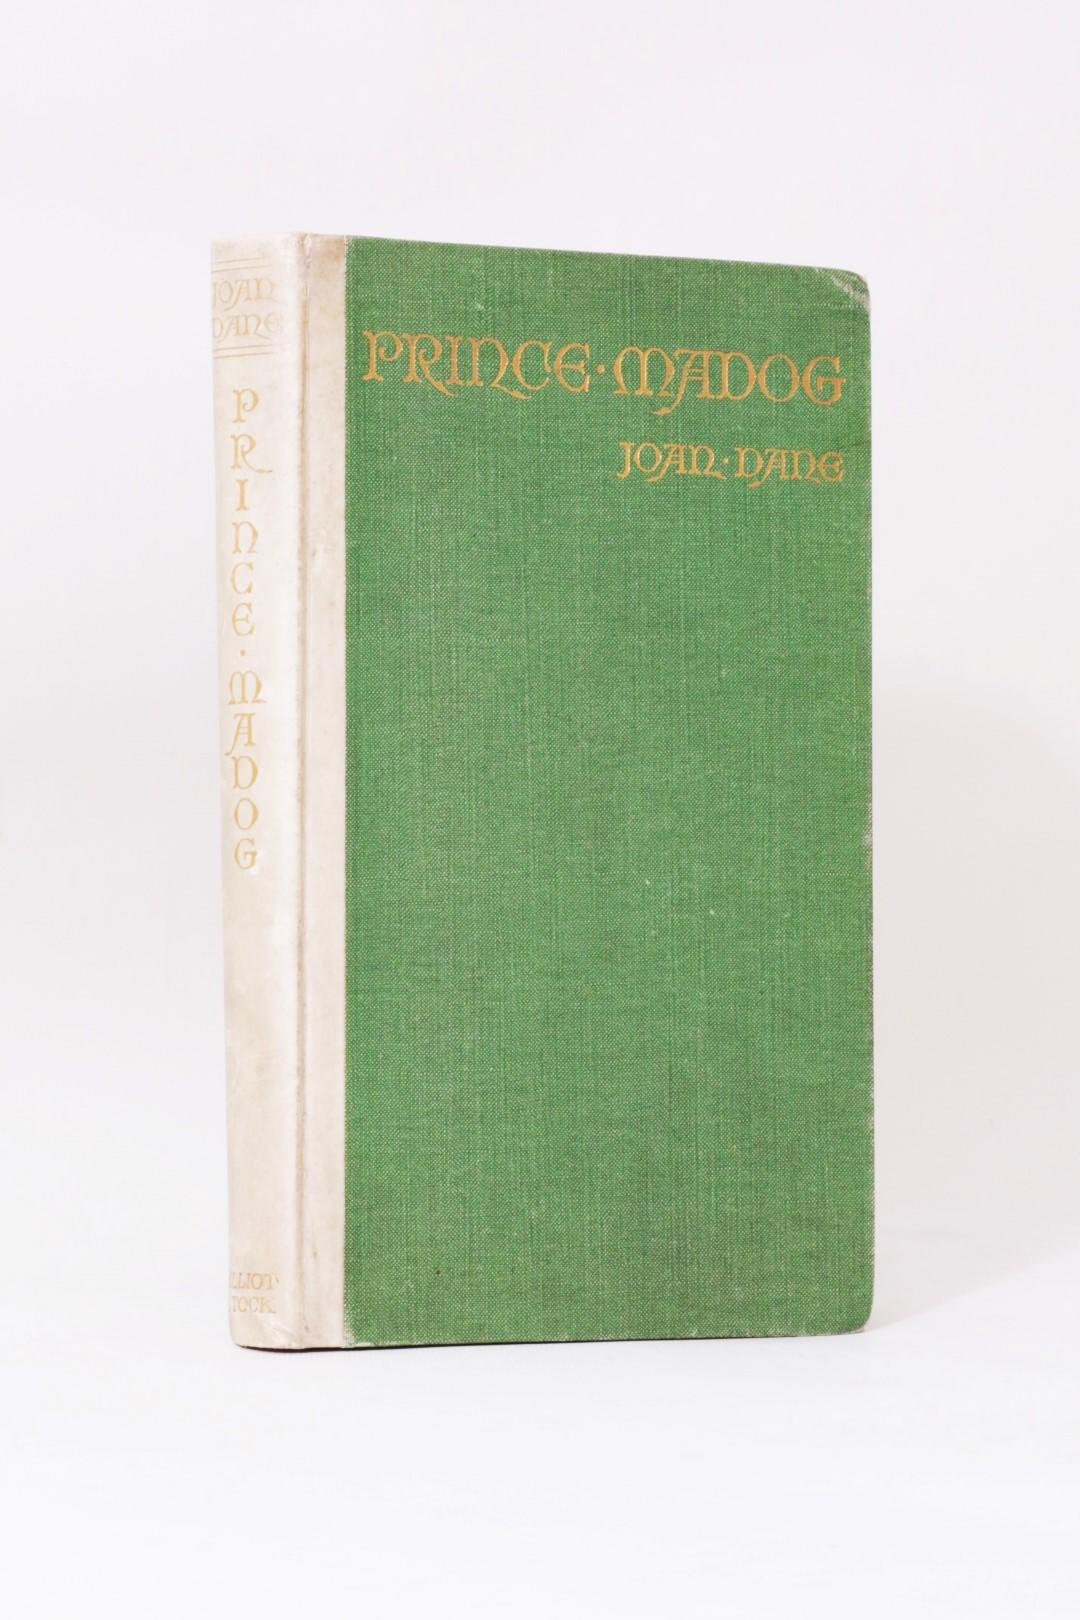 Joan Dane - Prince Madog - Elliot Stock, n.d. [1909], First Edition.